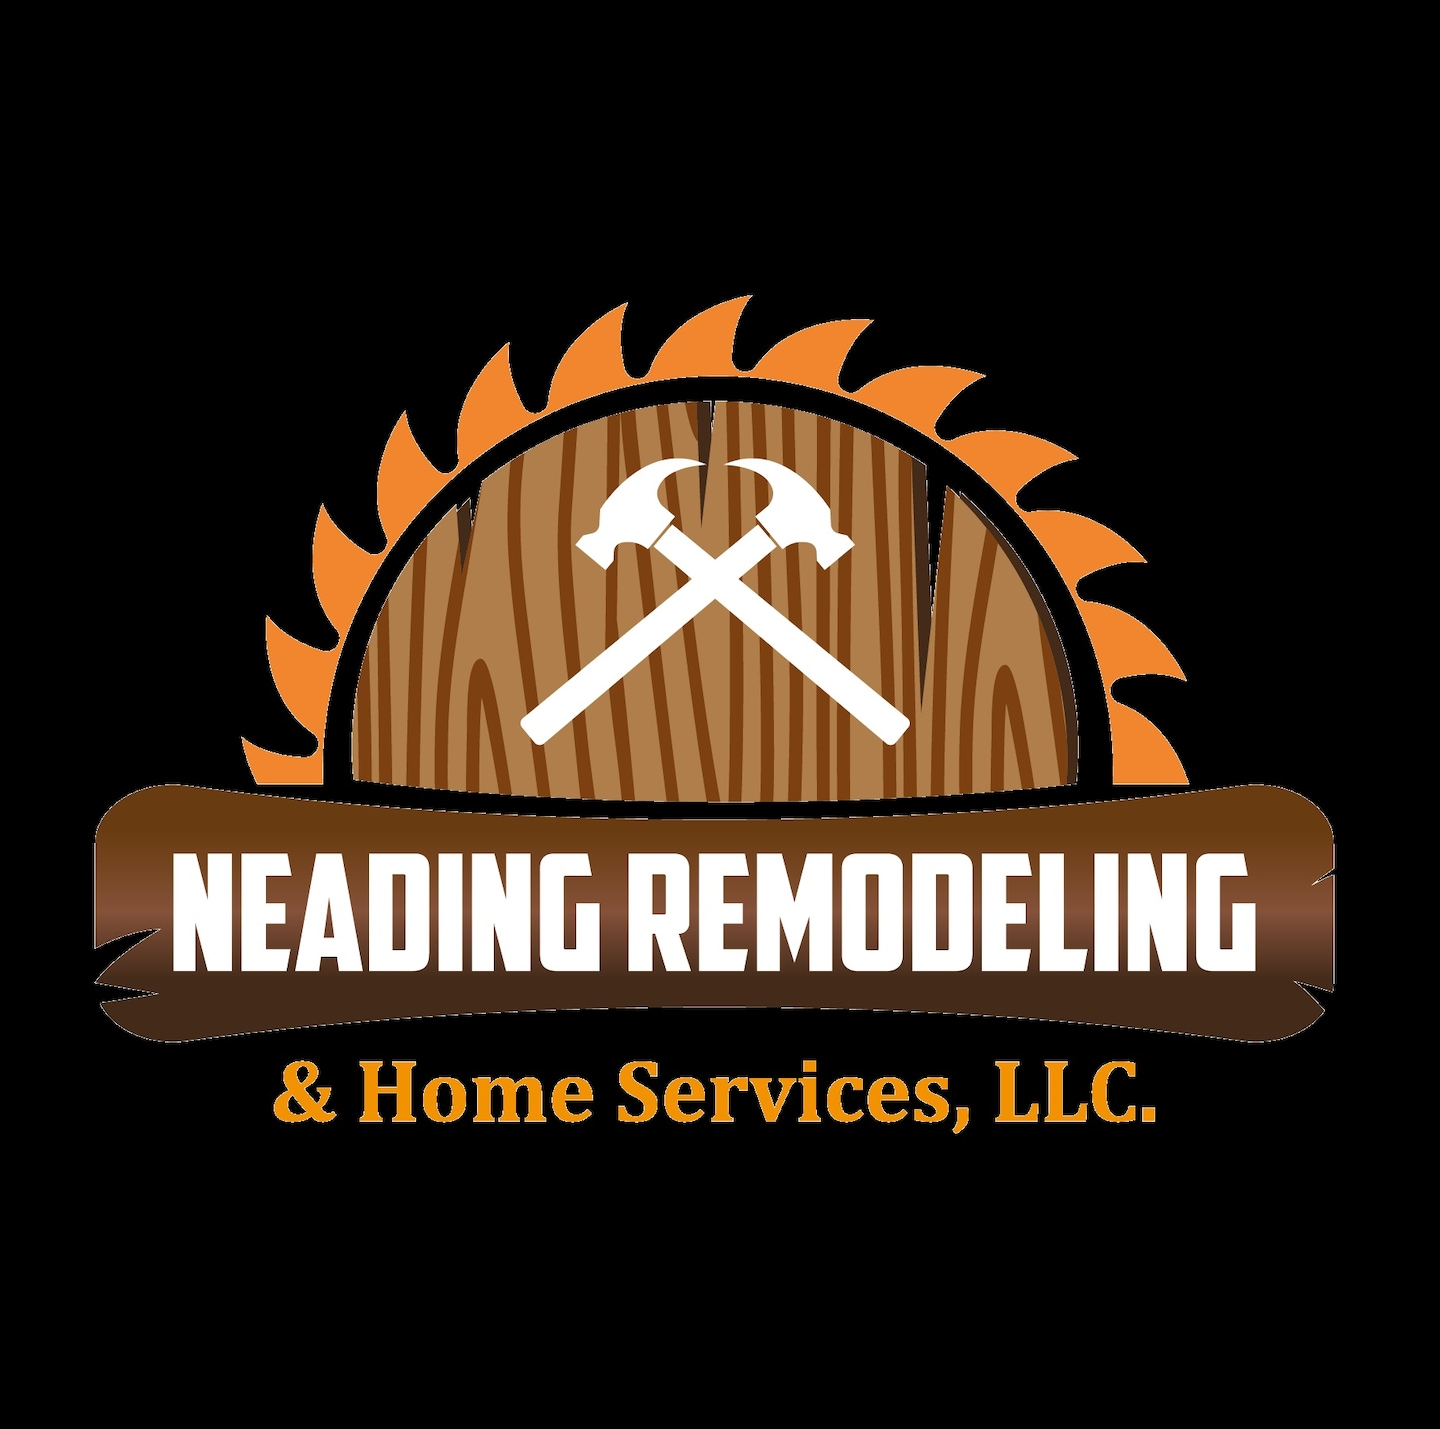 Neading Remodeling & Home Services, LLC